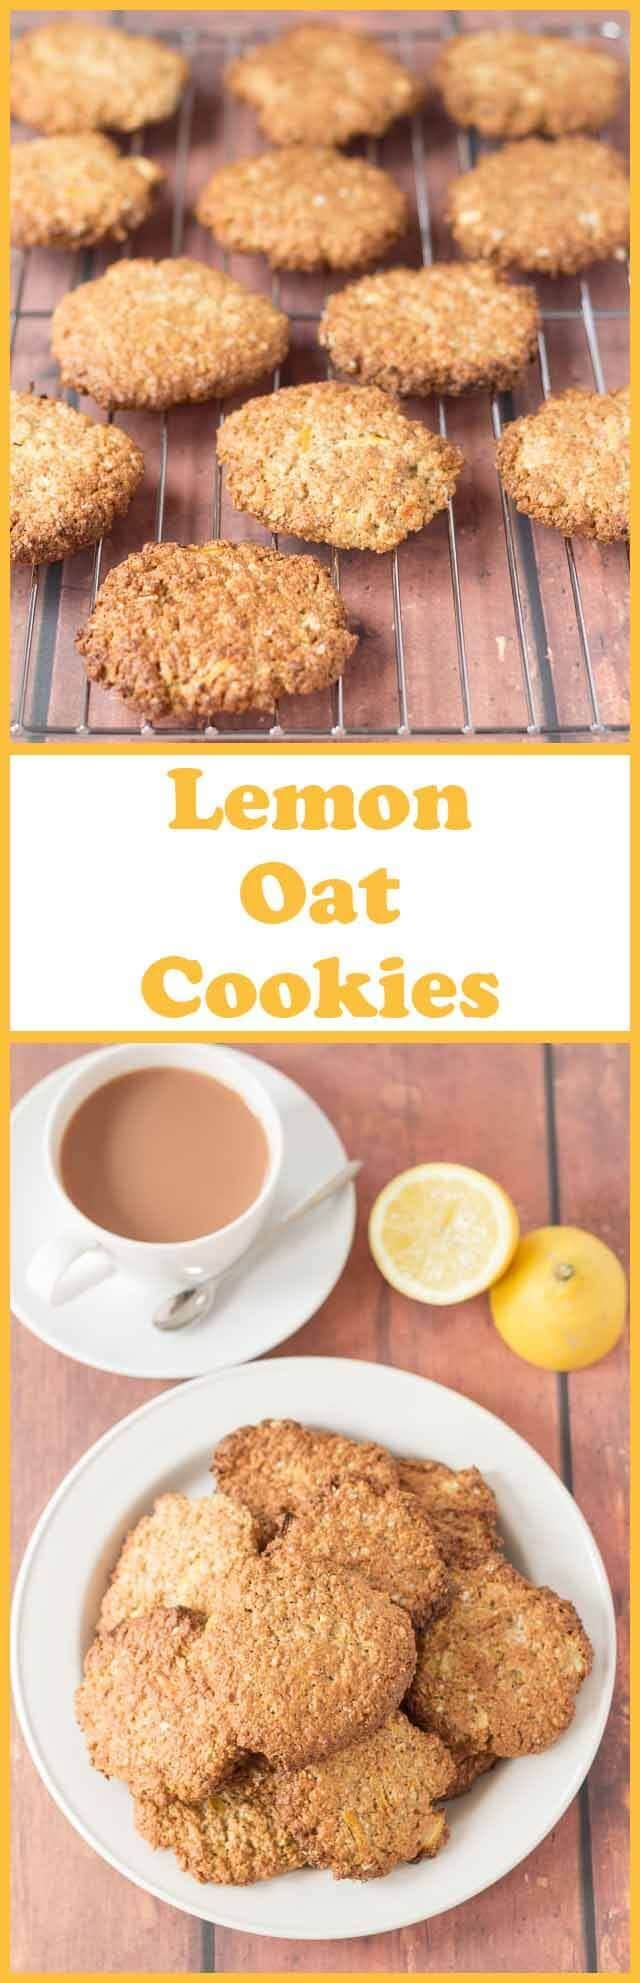 Lemon oat cookies are a delicious and simple bake with an amazing fresh lemon taste. Made with oats, wholemeal flour, coconut oil and lemon you'll love this healthier cookie recipe!